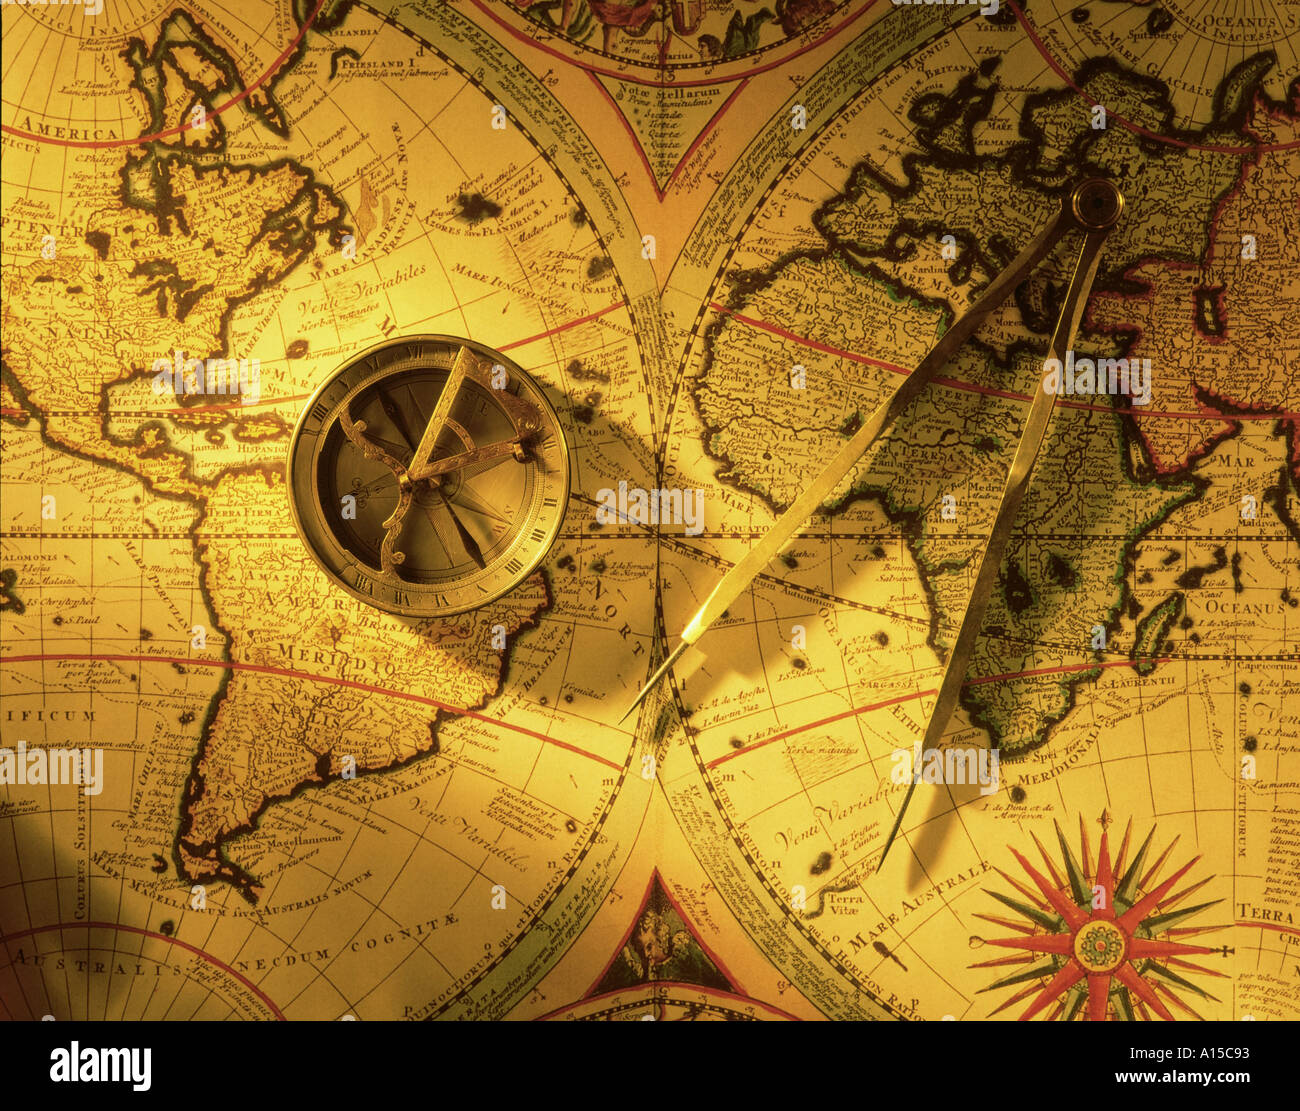 Antique World Map Compass And Dividers Stock Photo Alamy - Antique world map picture